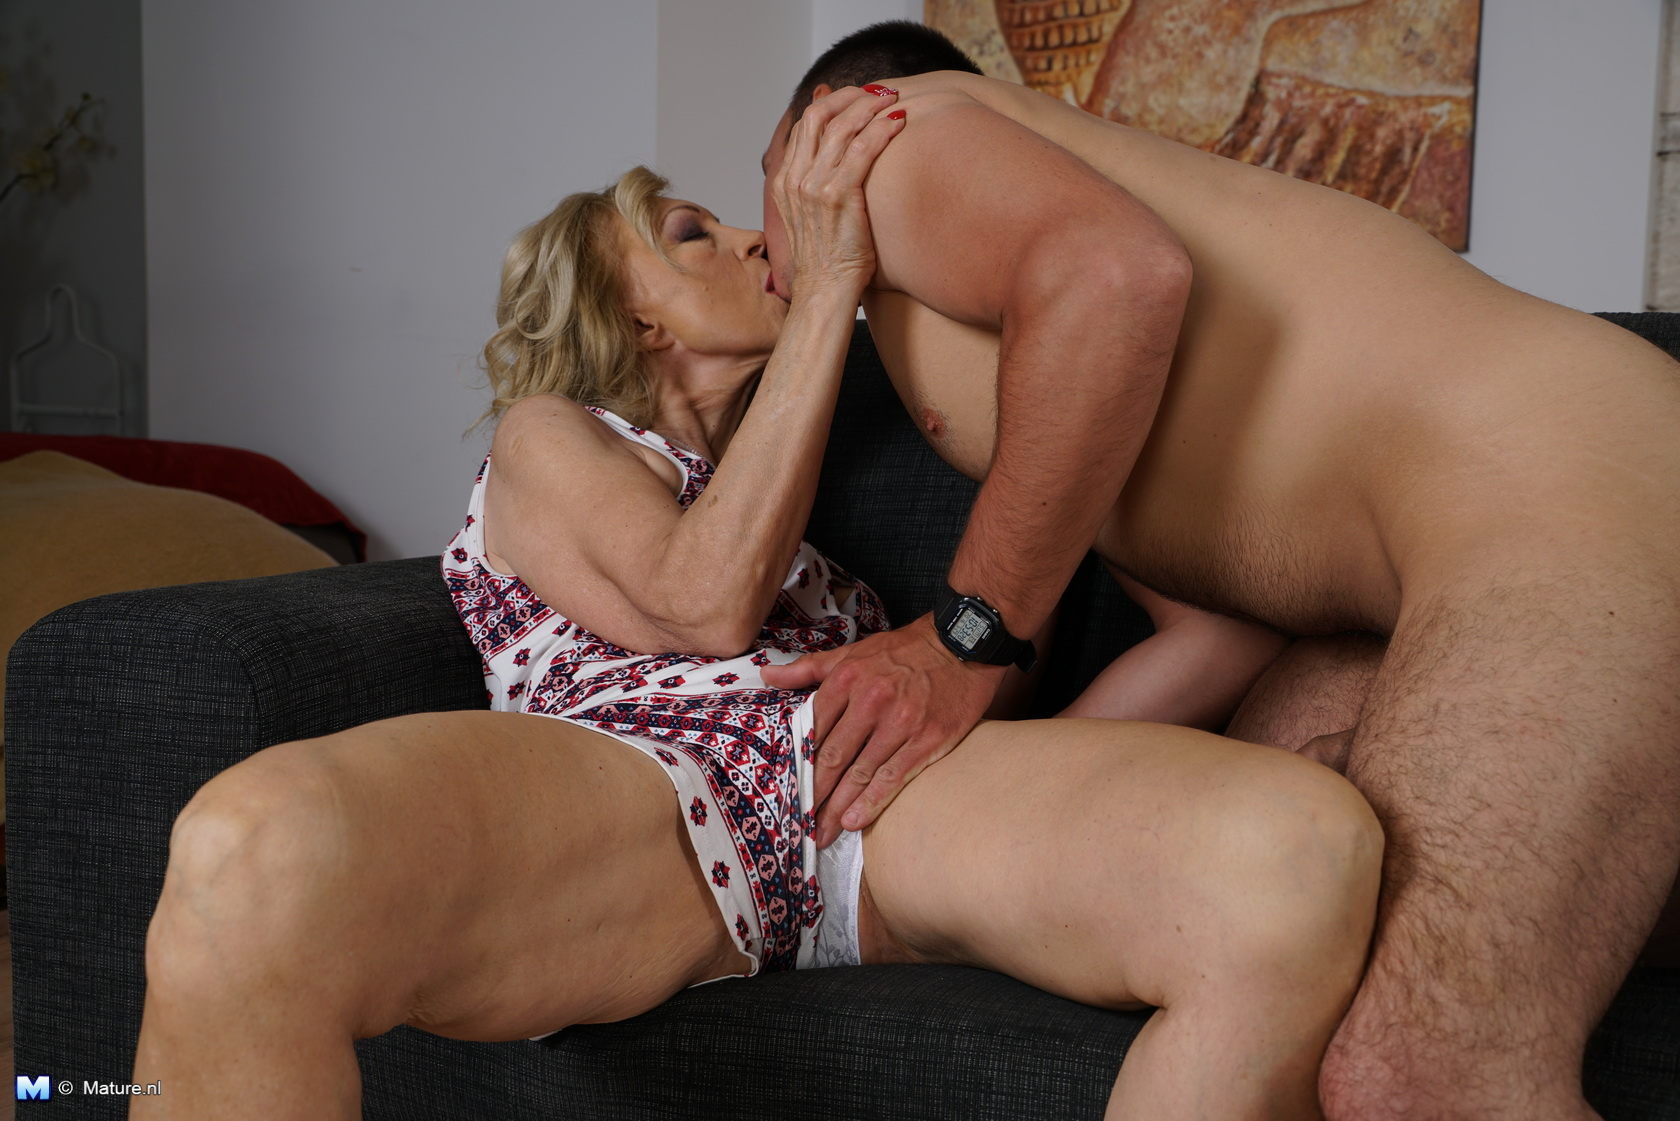 skinny cute granny martha  regulary meets with a young guy to bang anonymously